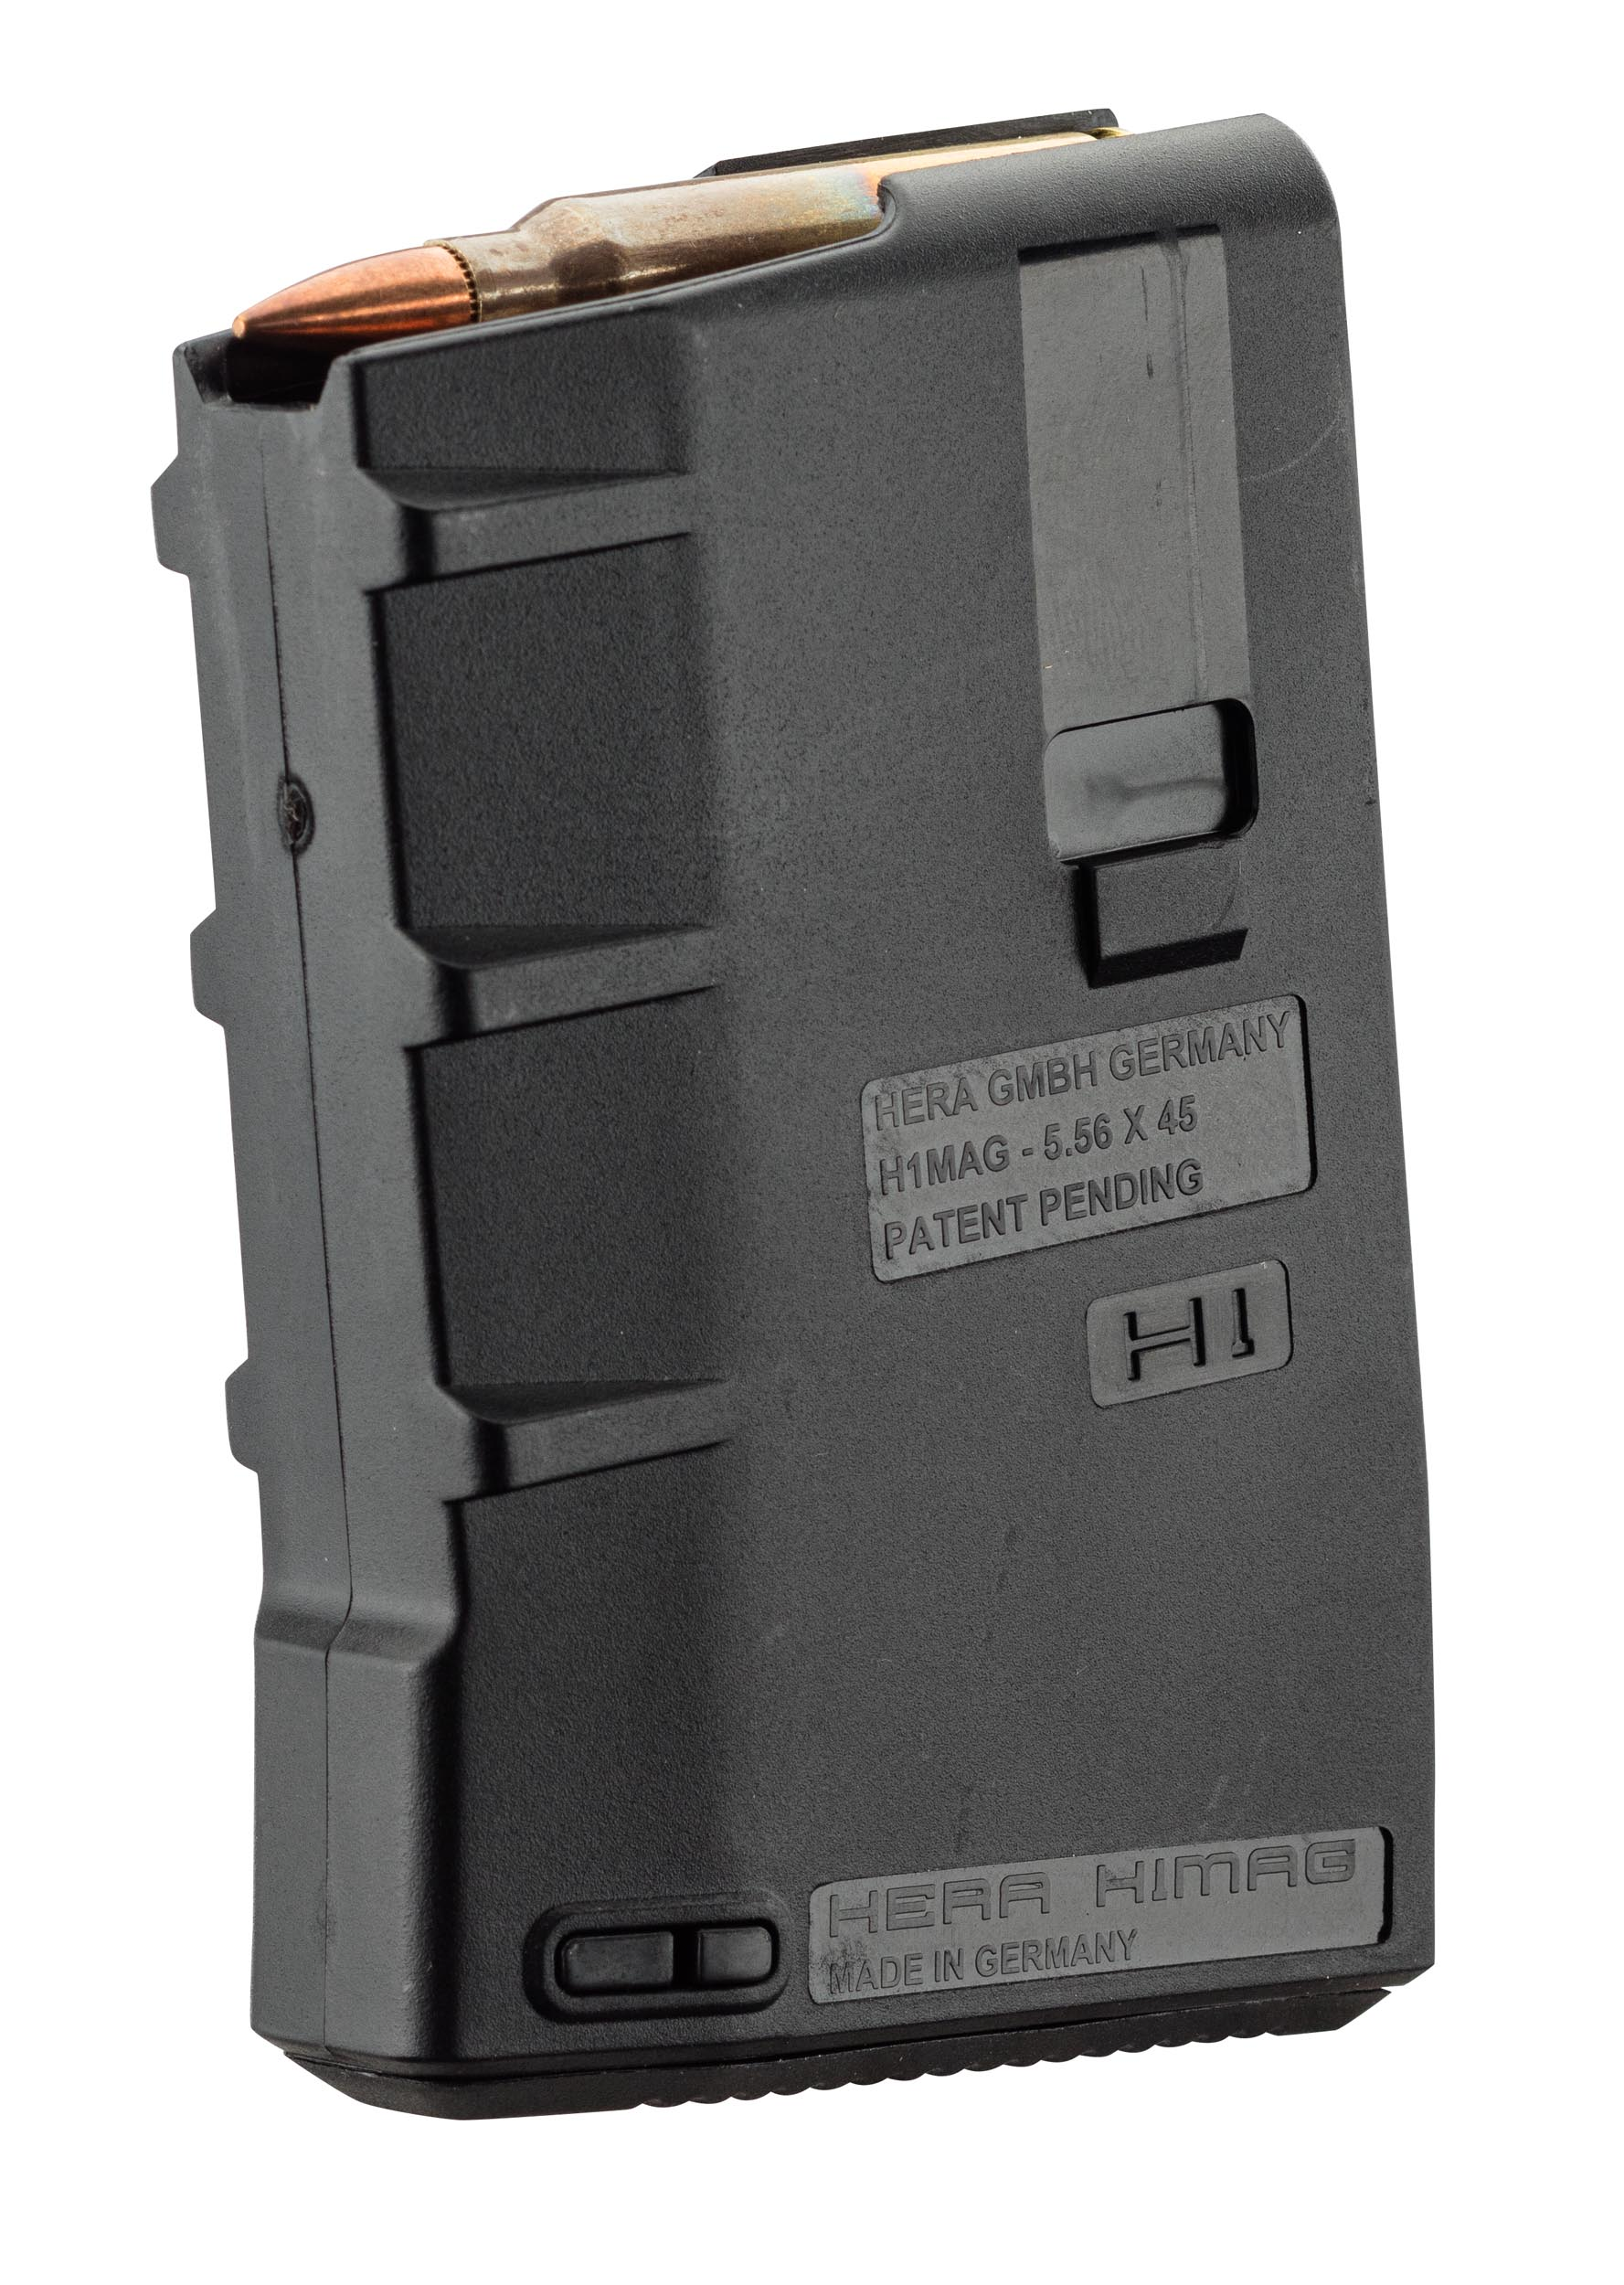 HA325-7 AR15 HERA ARMS 15th LS060/US100  223REM M-LOCK - HA325